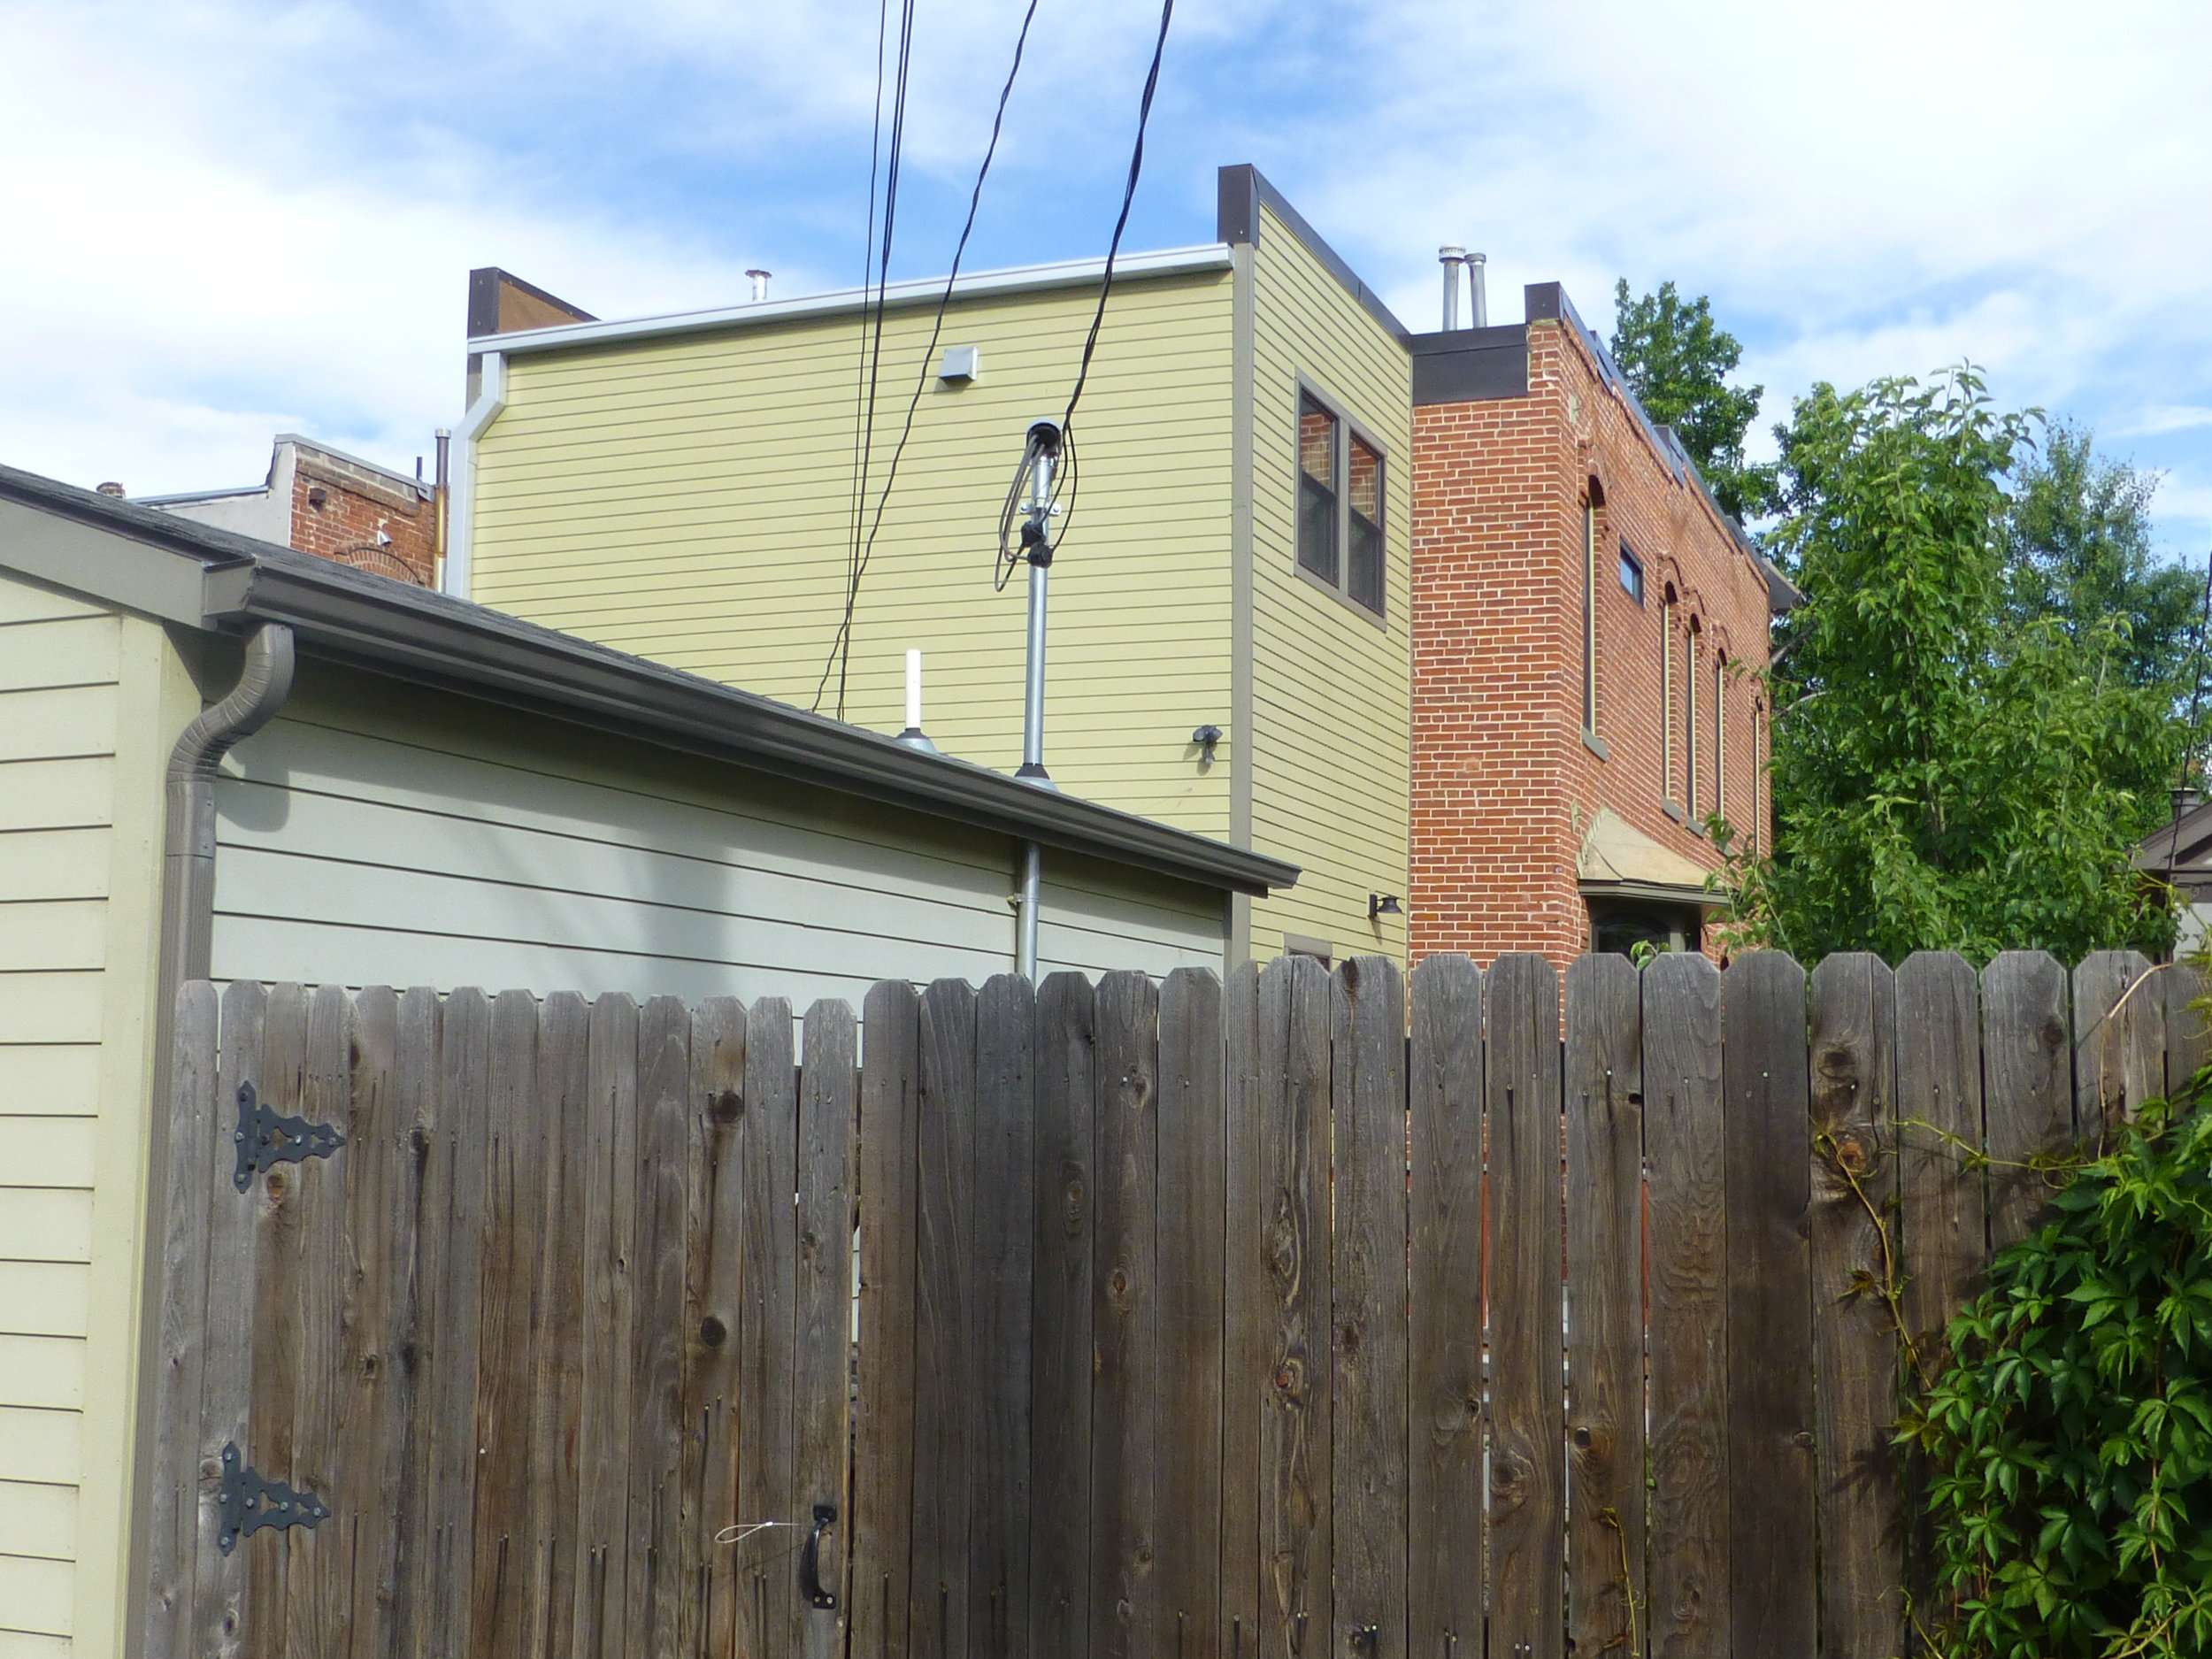 This rear addition is tucked in behind the historic house and is not visible from the street.